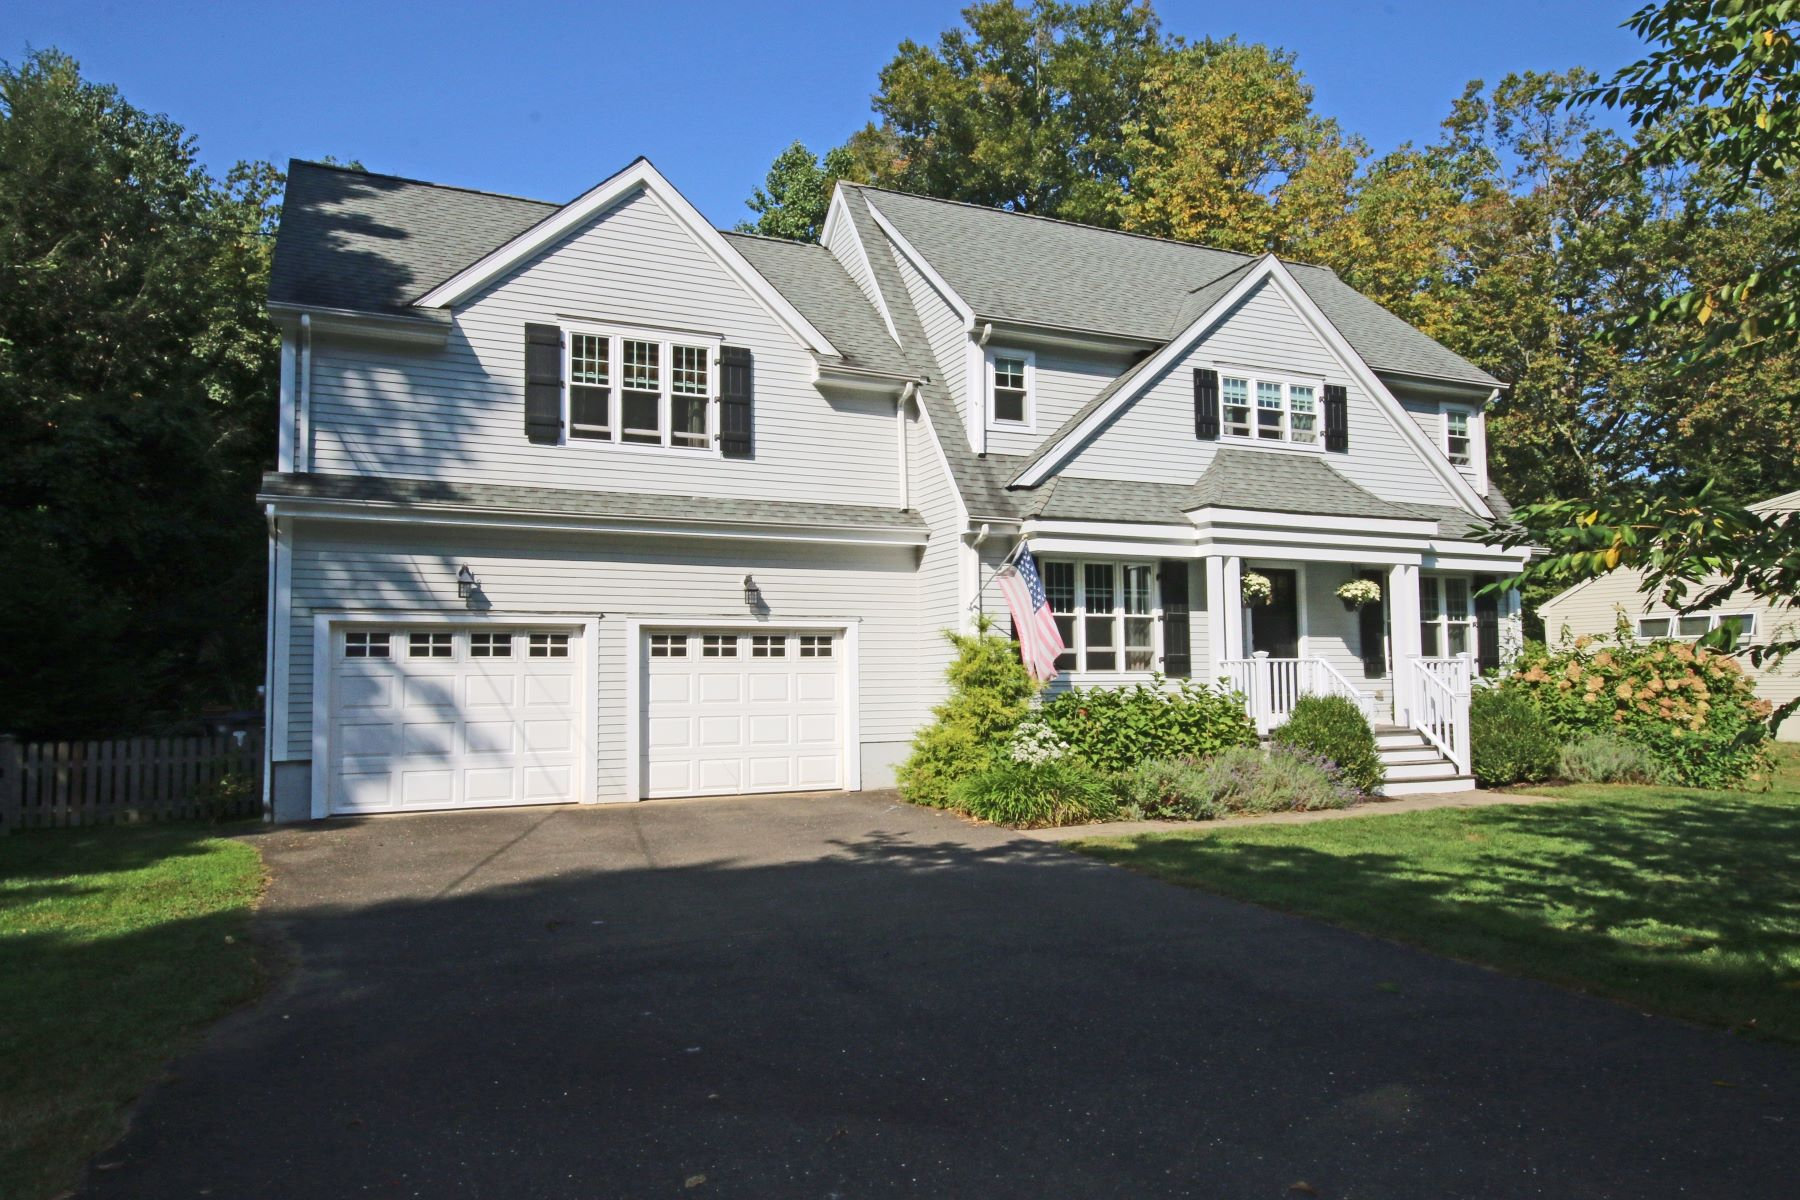 Single Family Home for Sale at WELCOME TO LAKE HILLS 93 Nonopoge Road, Fairfield, Connecticut, 06825 United States